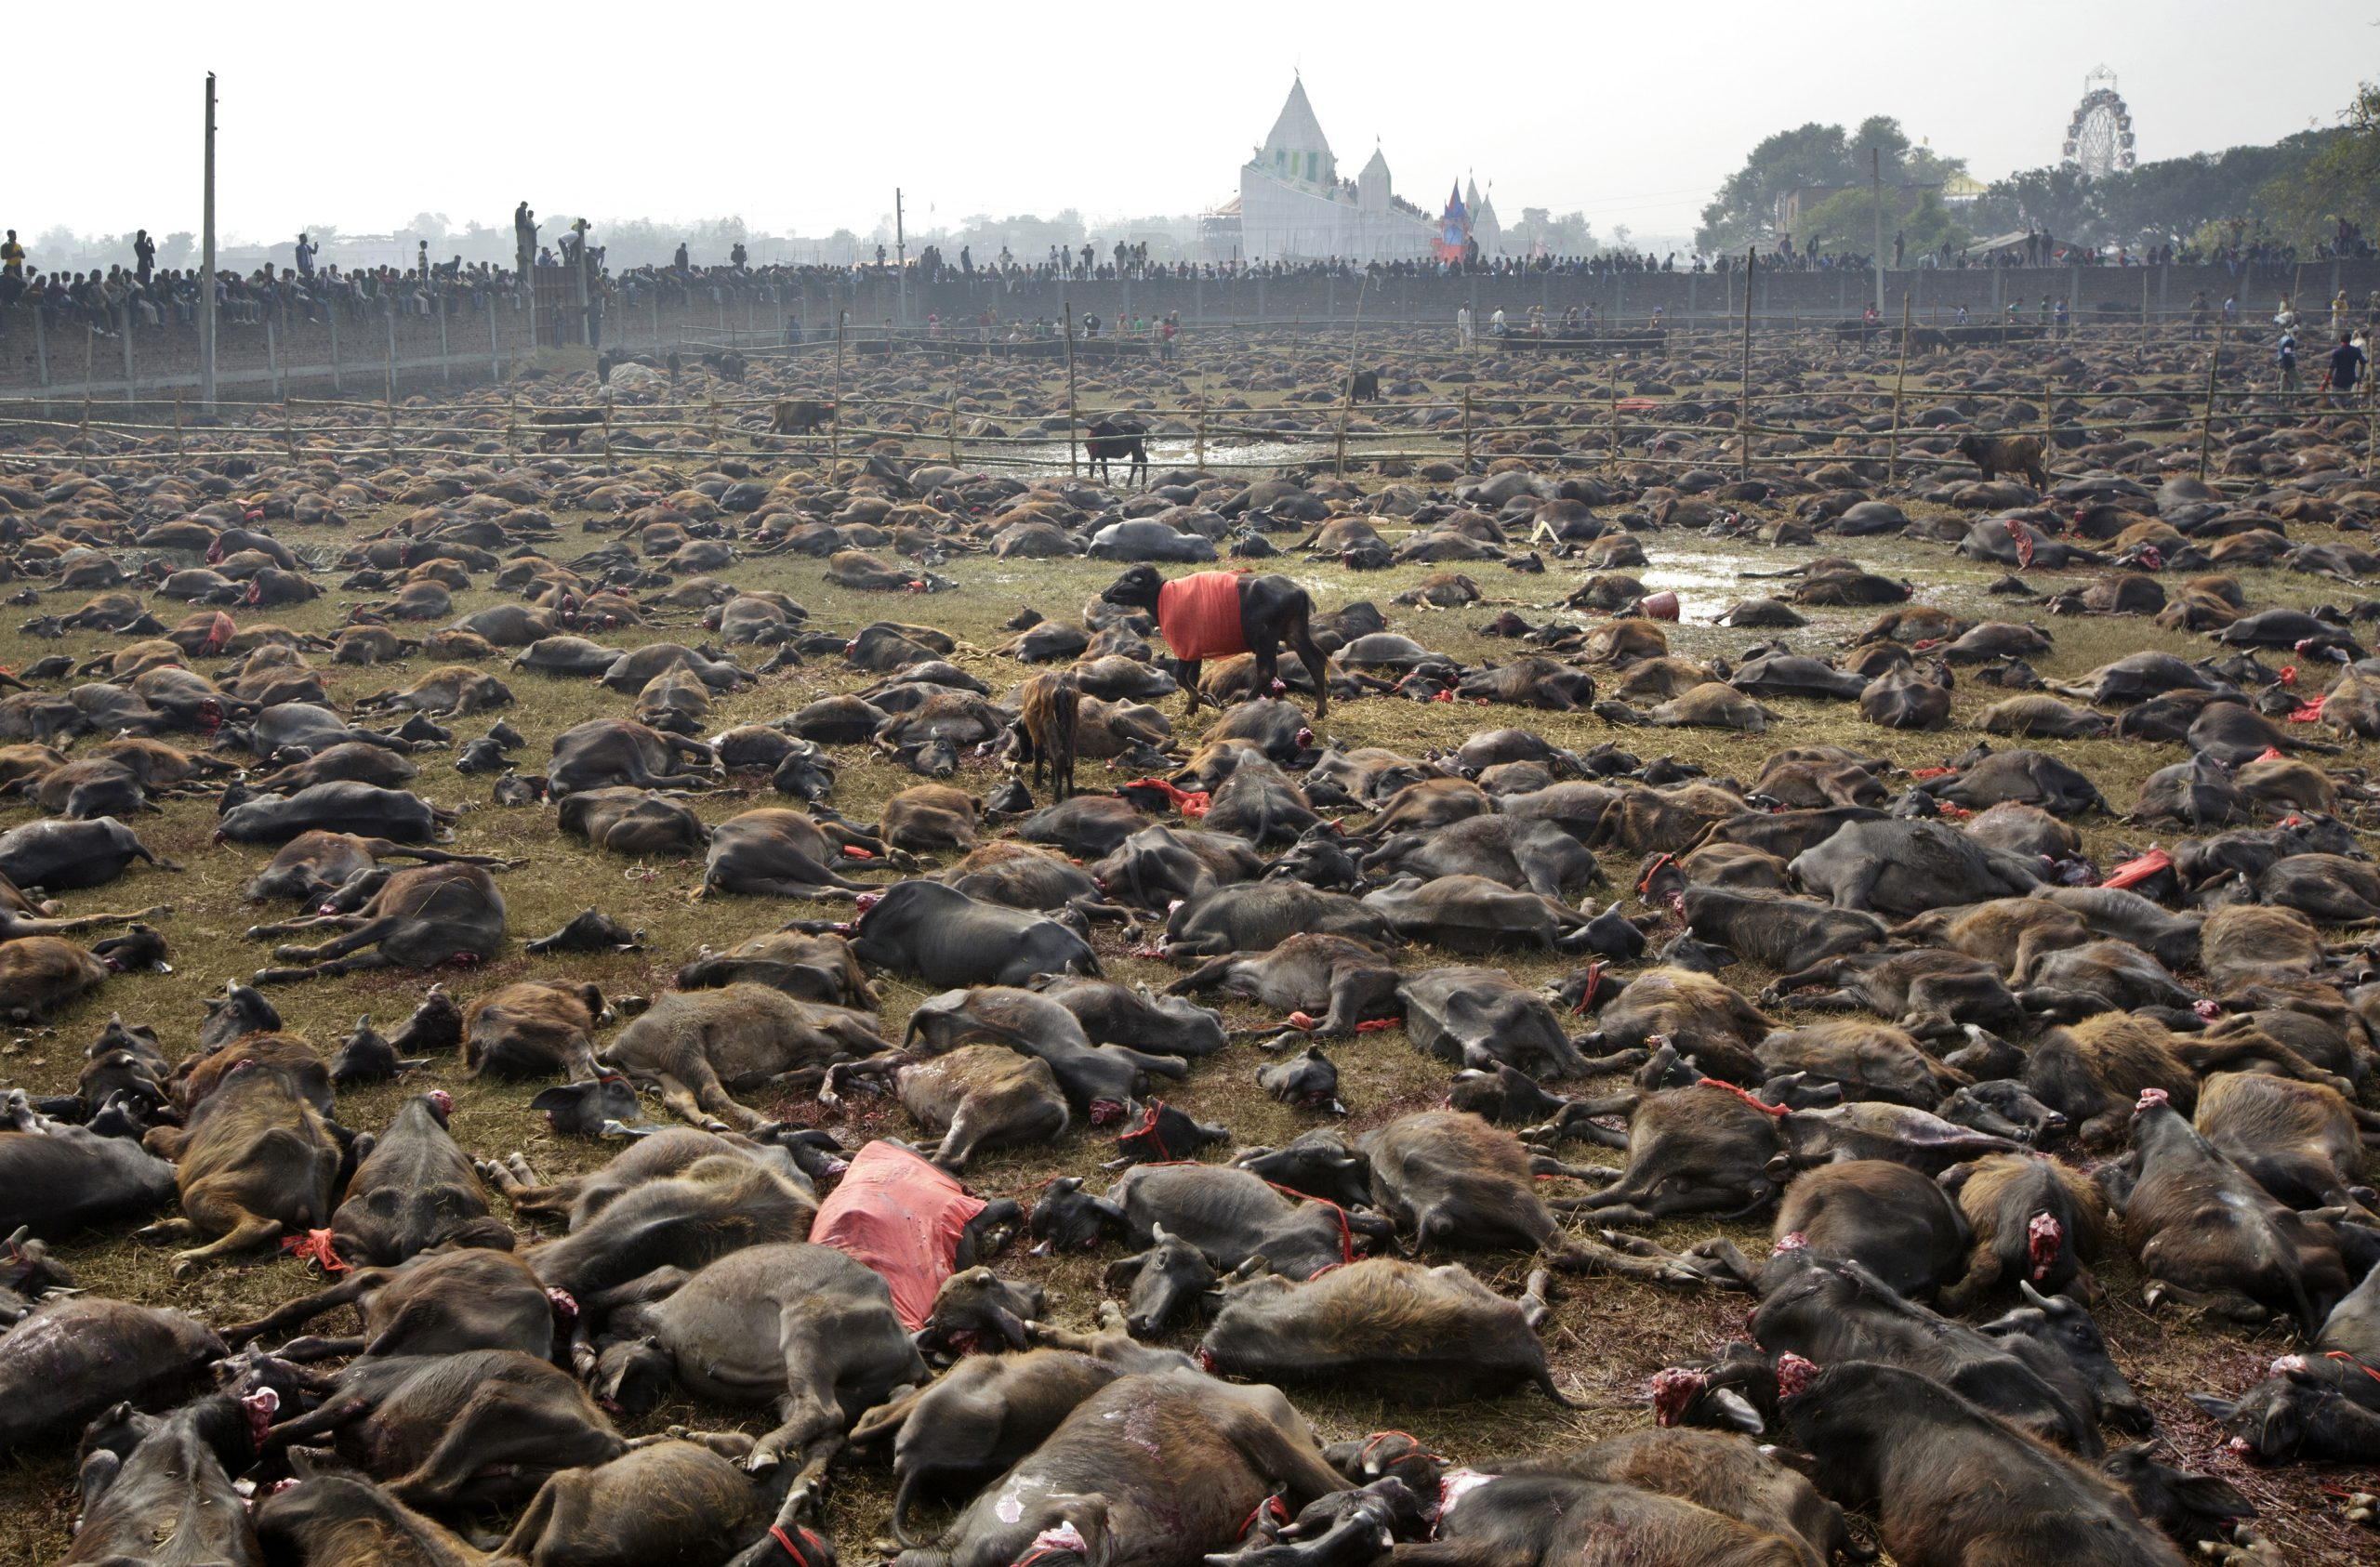 Decapitated animals at the Gadhimai Festival